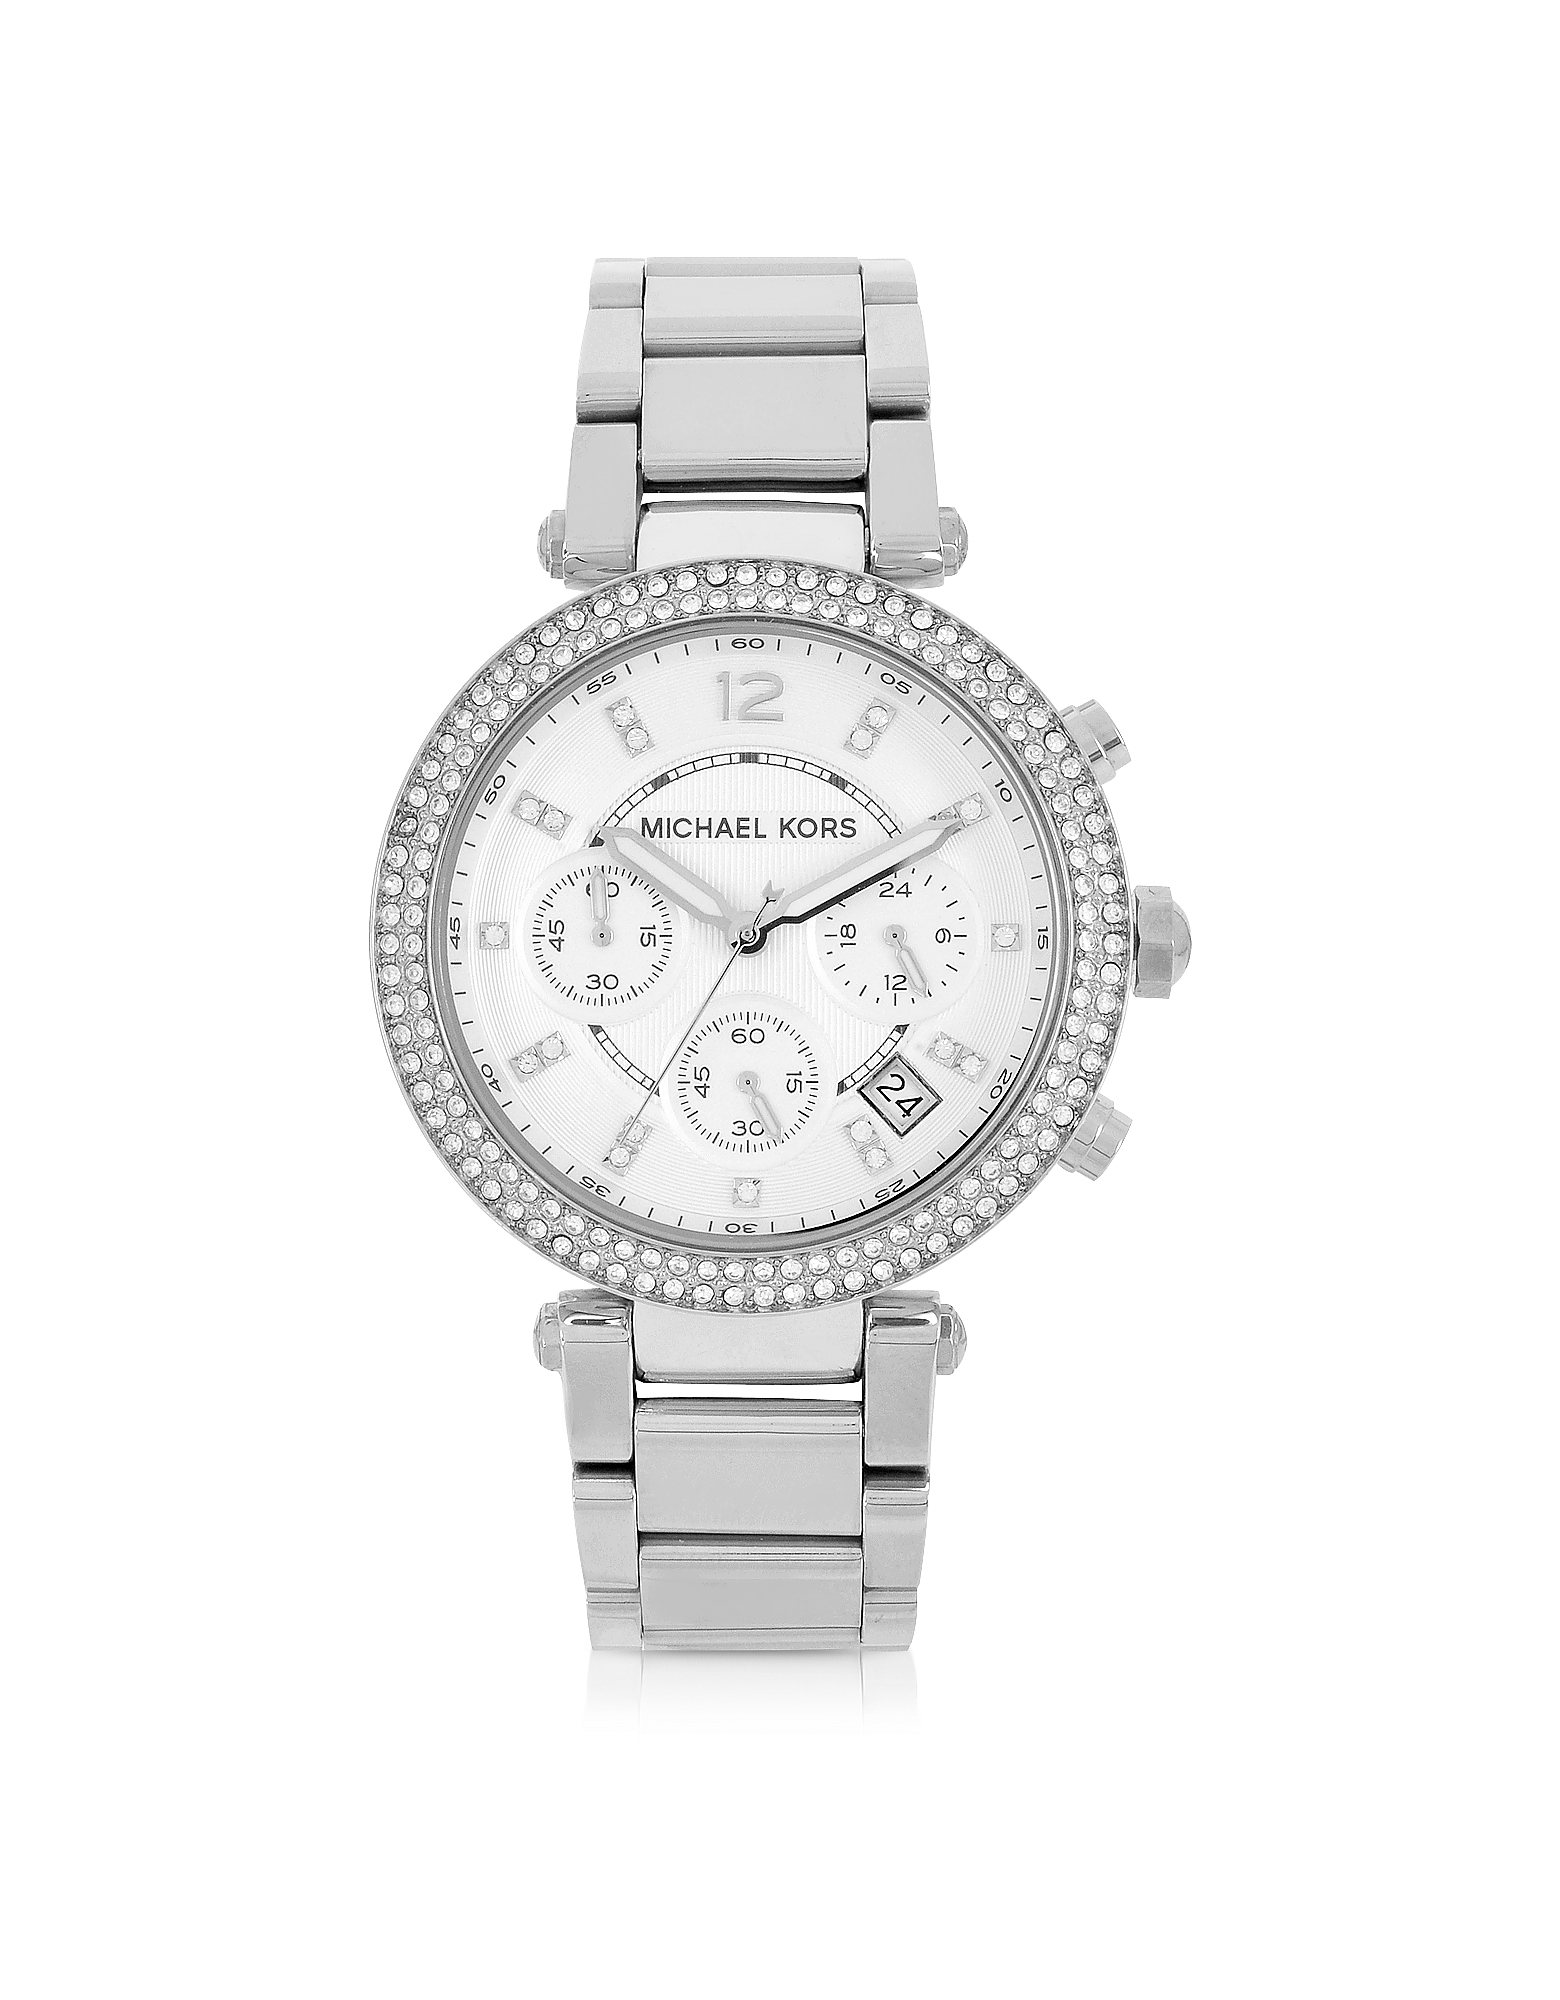 Michael Kors Women's Watches, Parker Stainless Steel Chronograph Glitz Watch Women's Watch